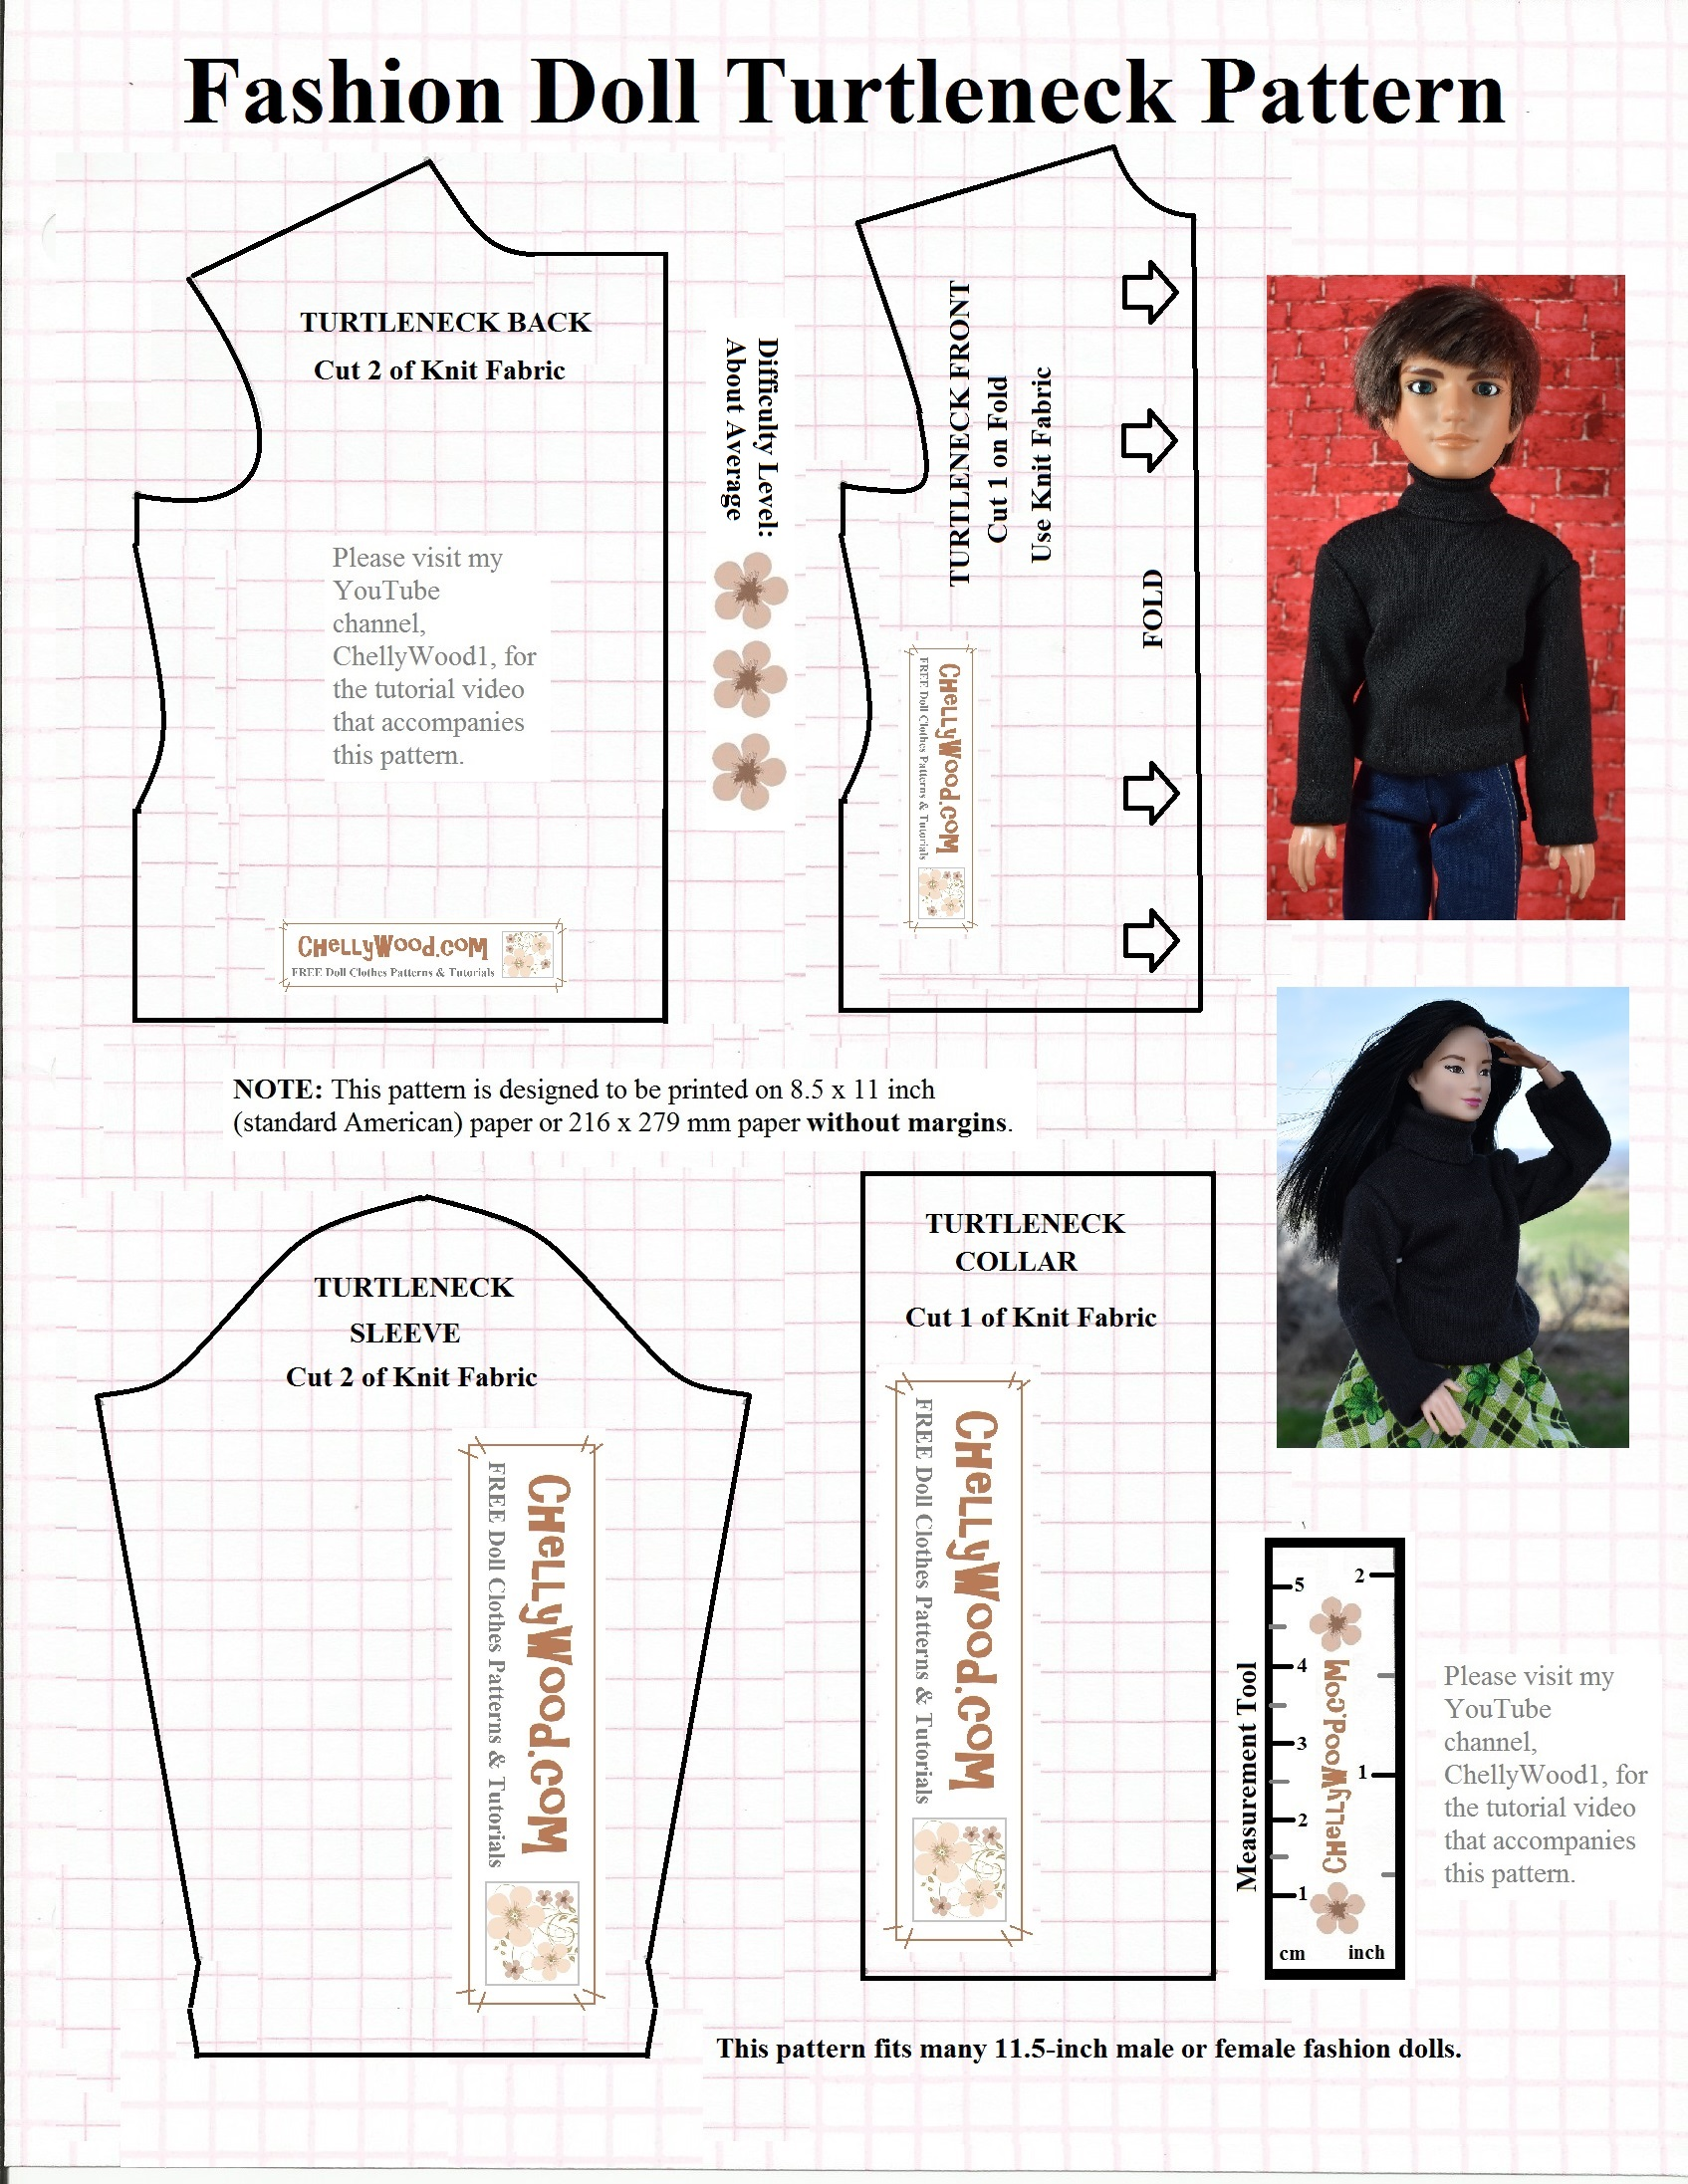 Diy tutorial for sewing a turtleneck for fashiondolls has a free in case you missed it i did post the free printable sewing pattern for making this turtleneck yesterday jeuxipadfo Image collections